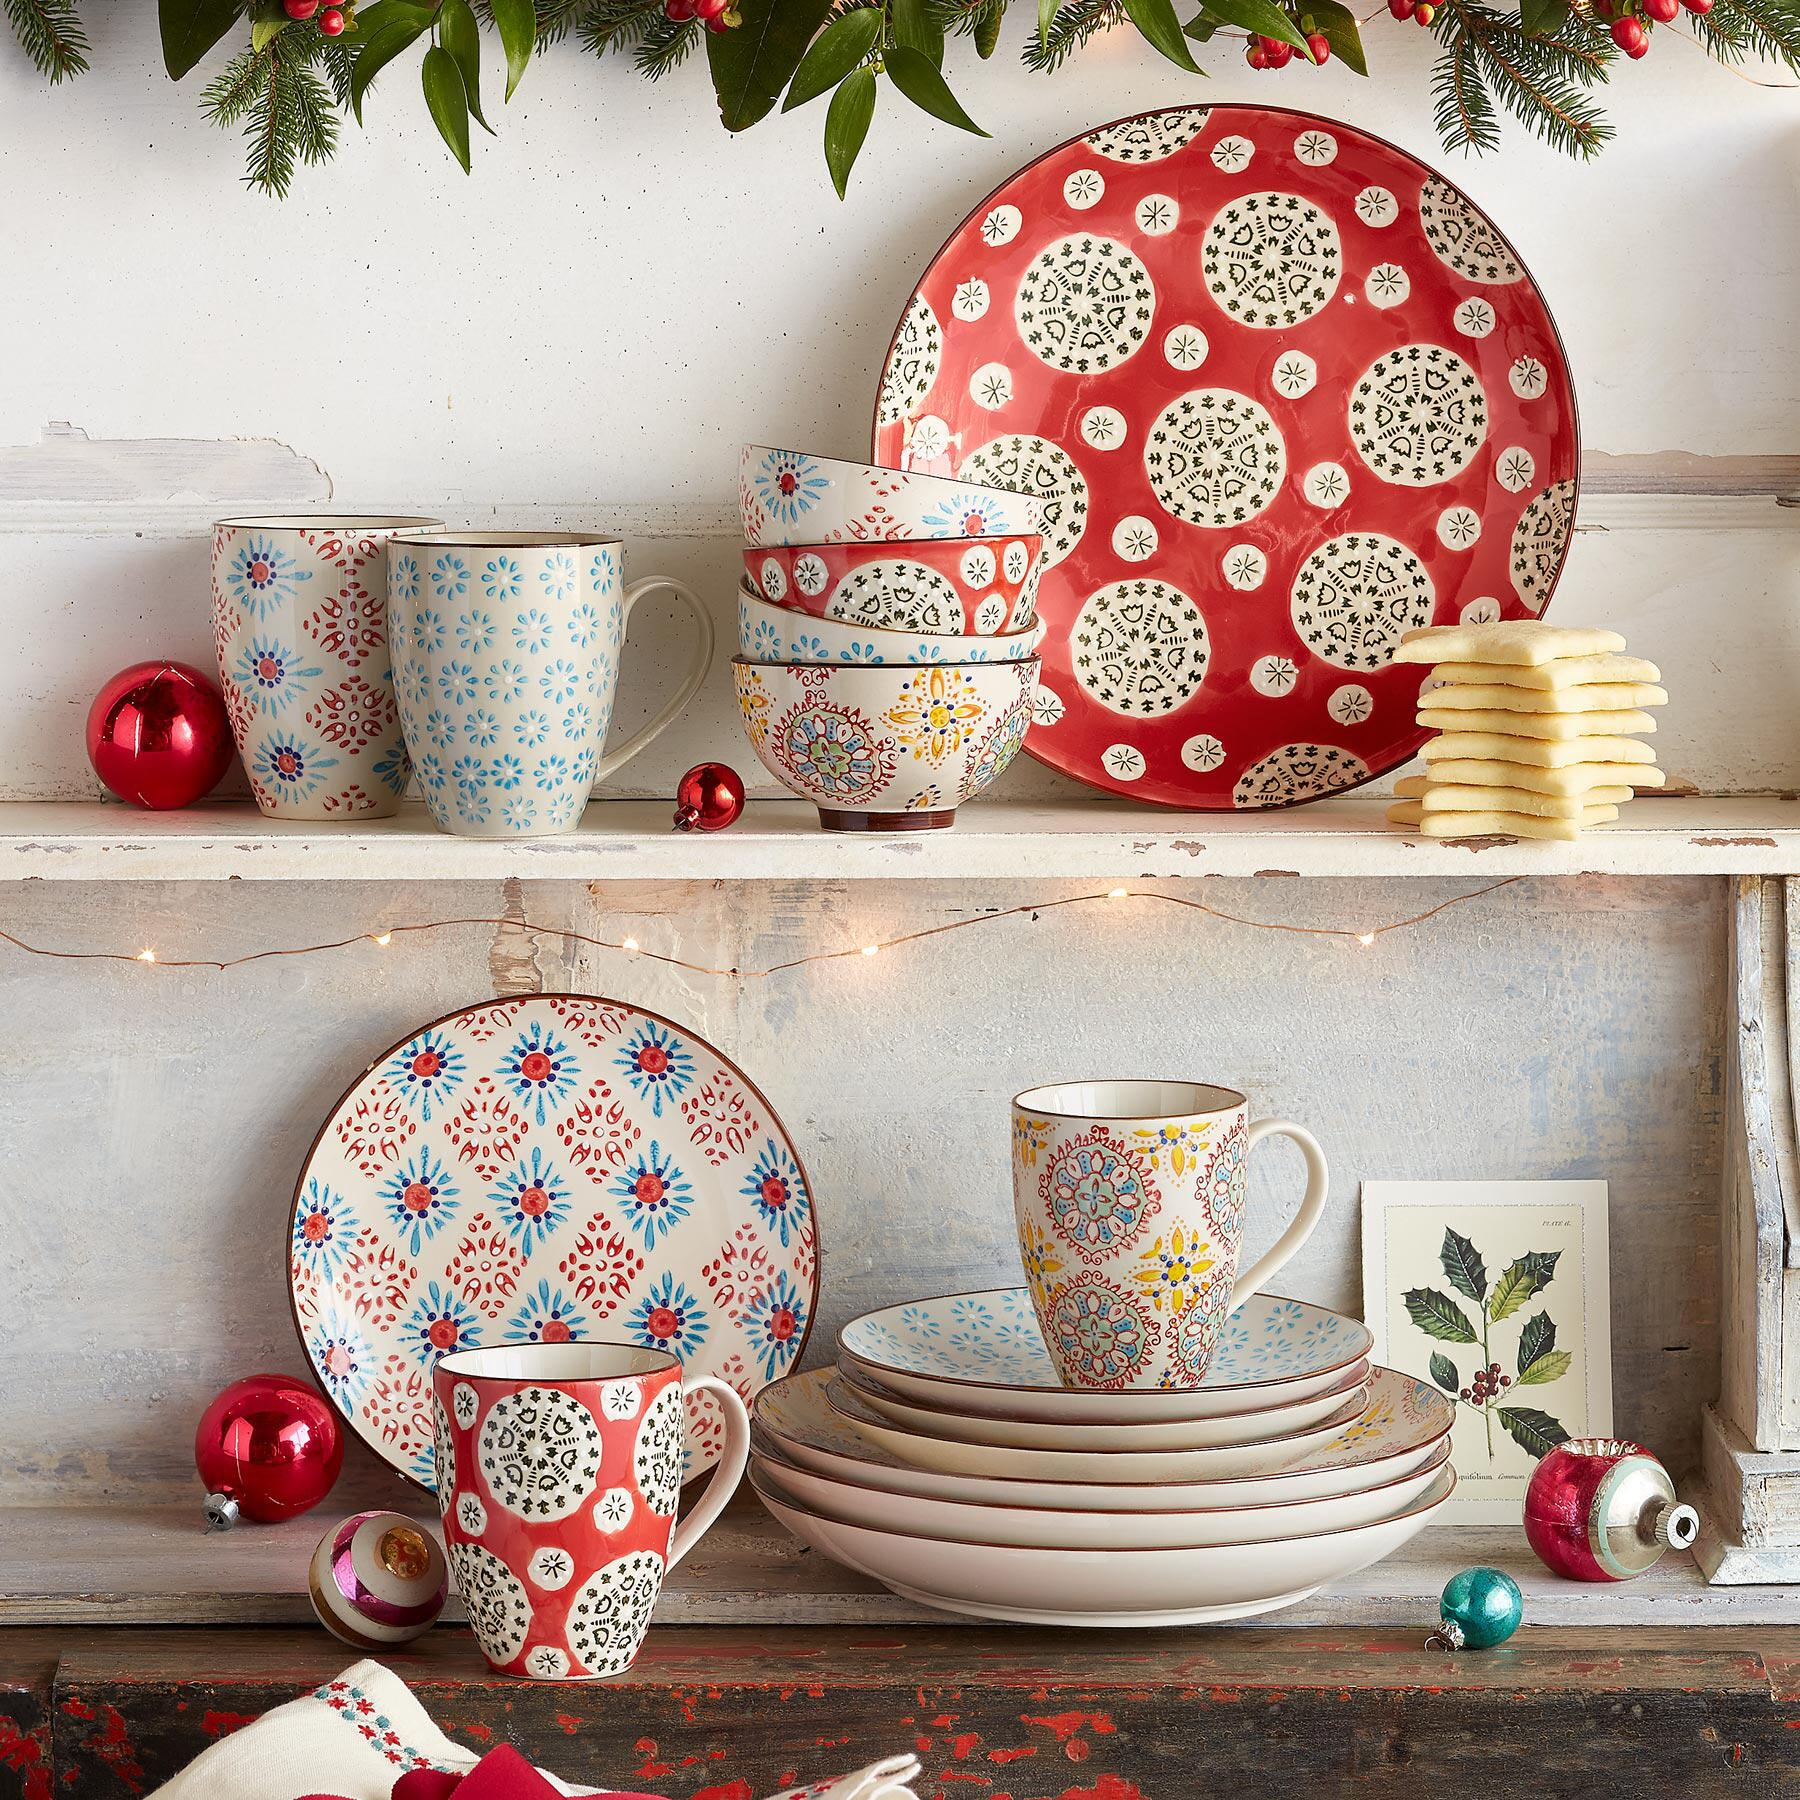 Boheme dinnerware from Sundance Catalog